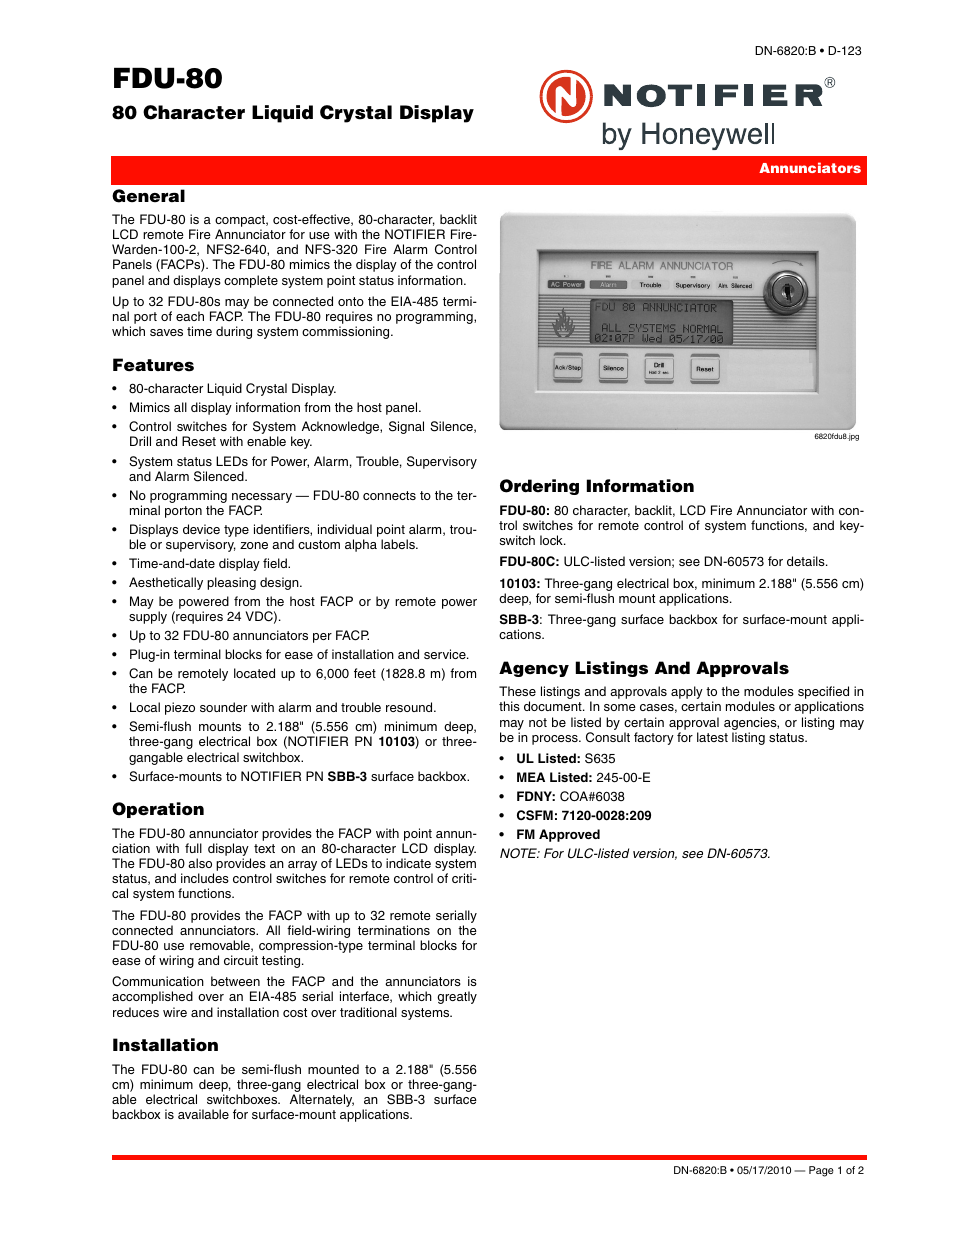 Notifier FDU-80 User Manual | 2 pages